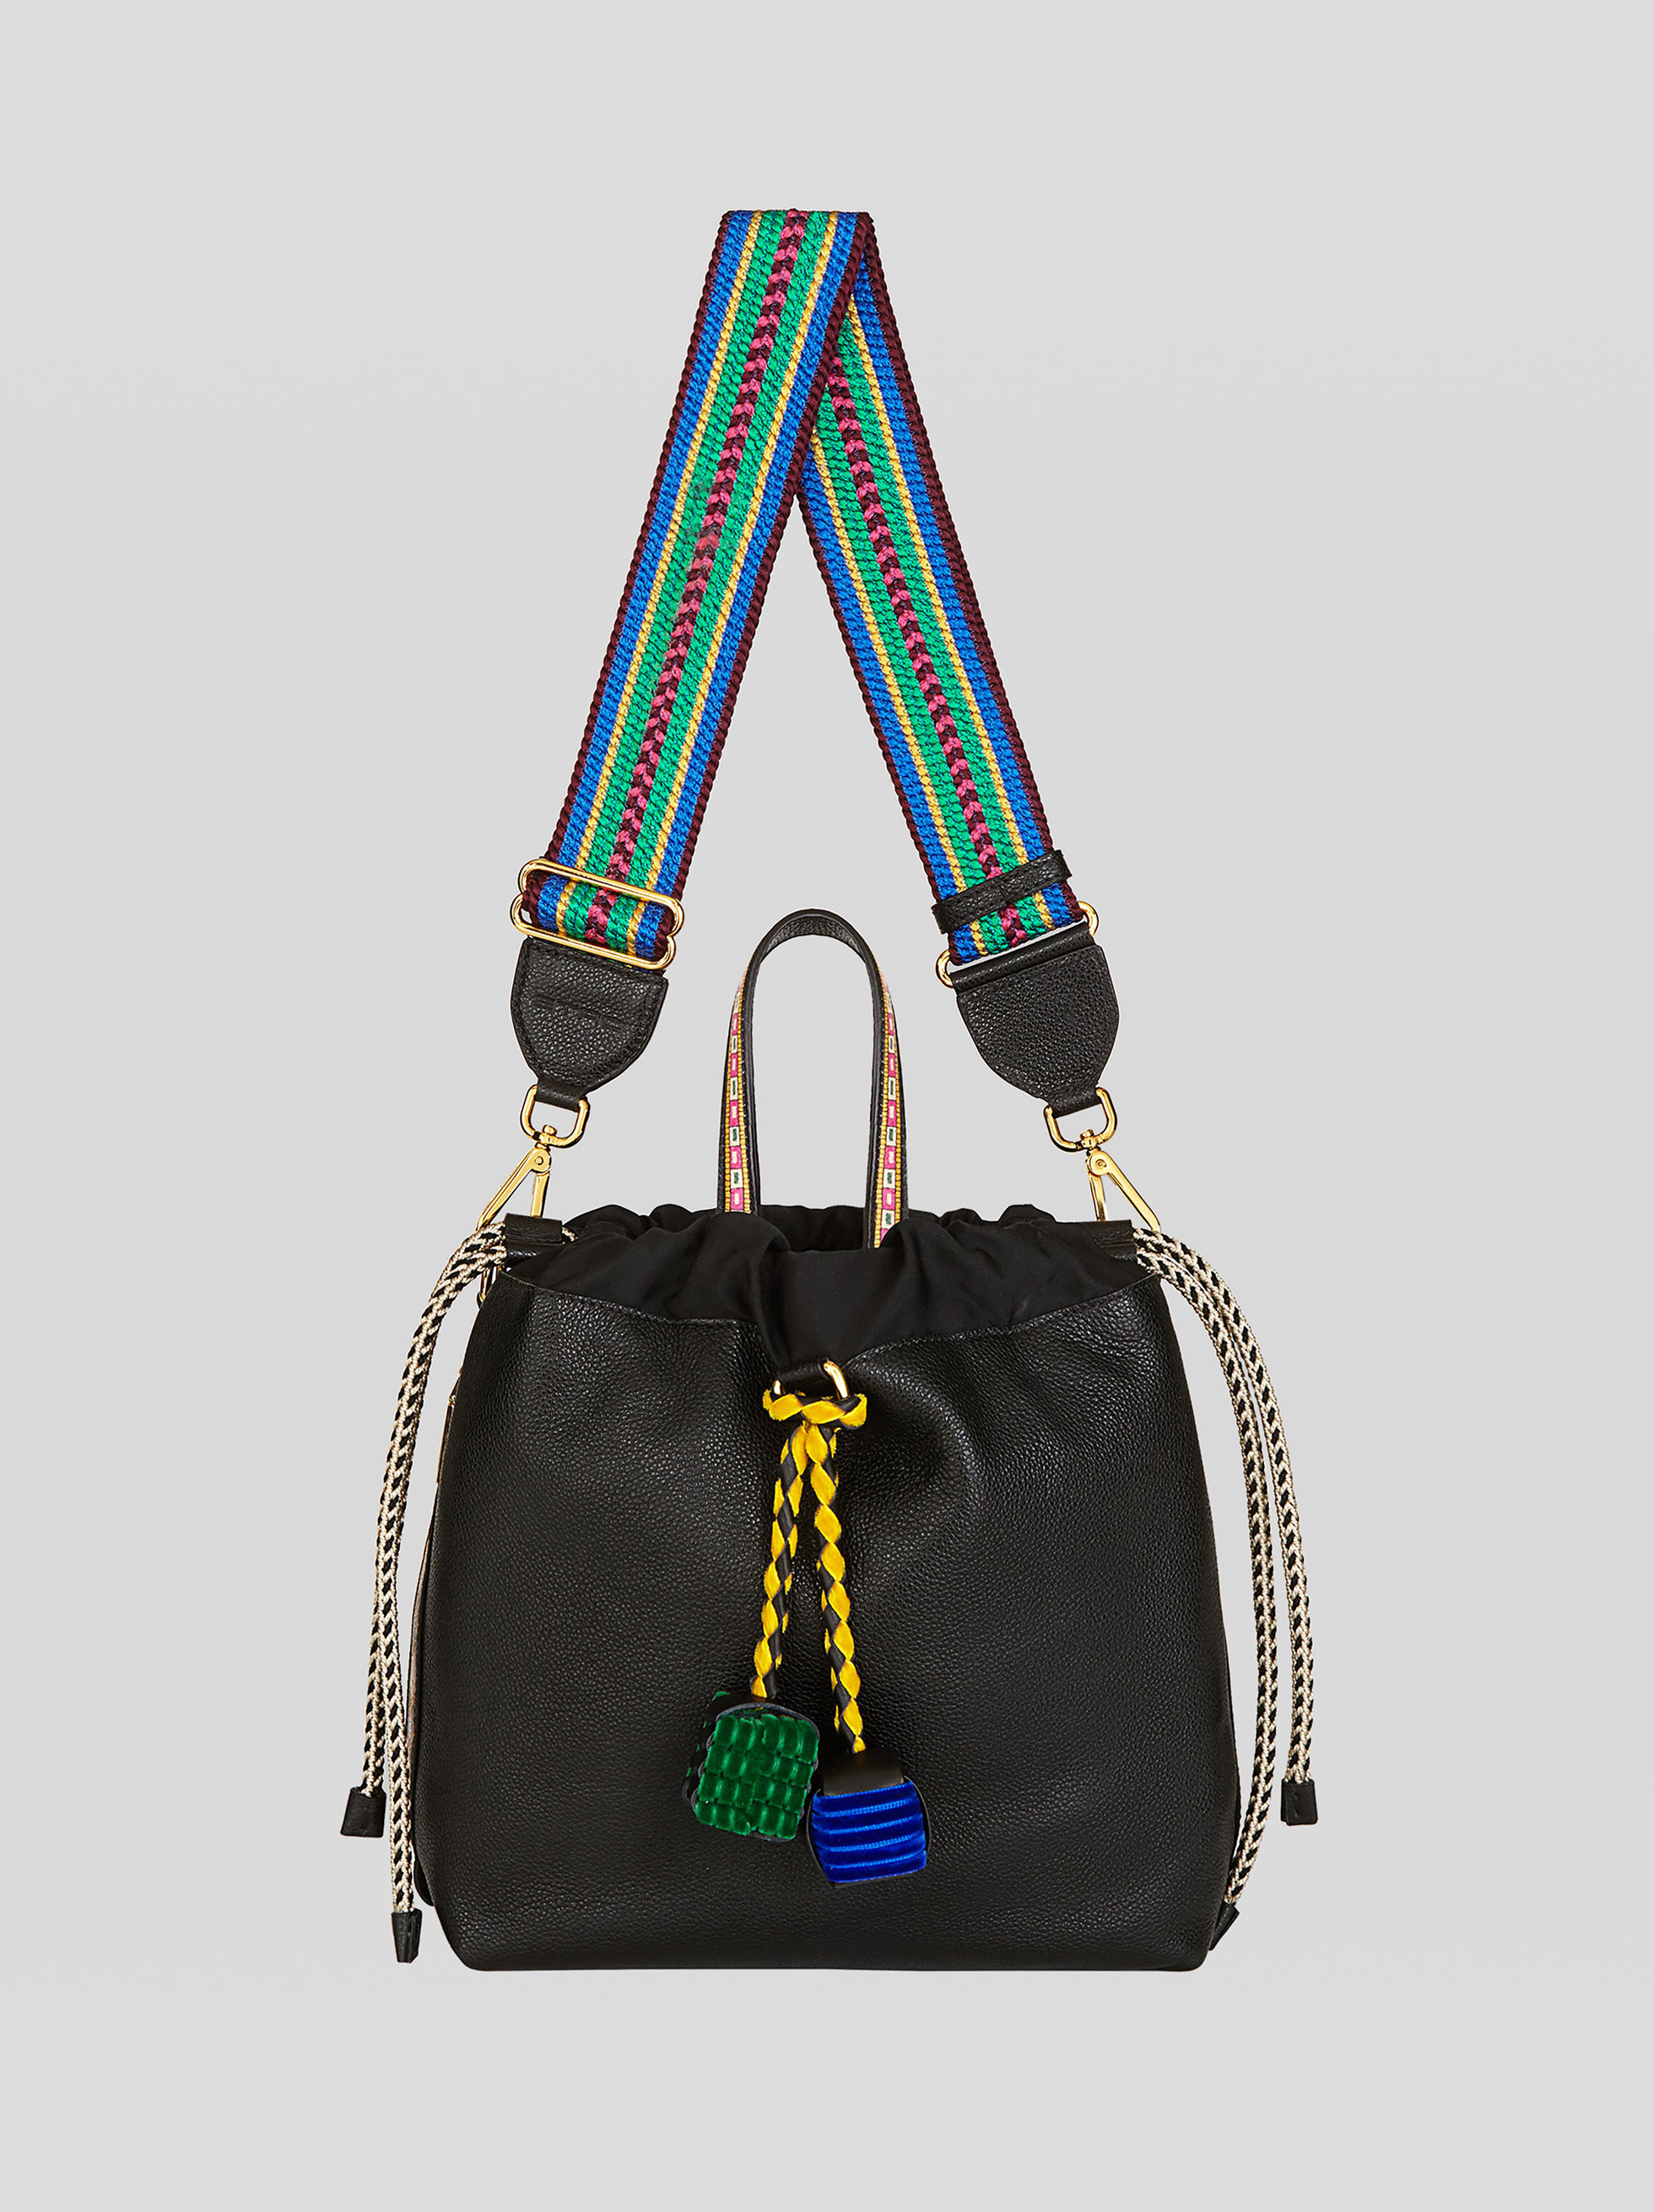 ETRO SAC SHOPPING BAG